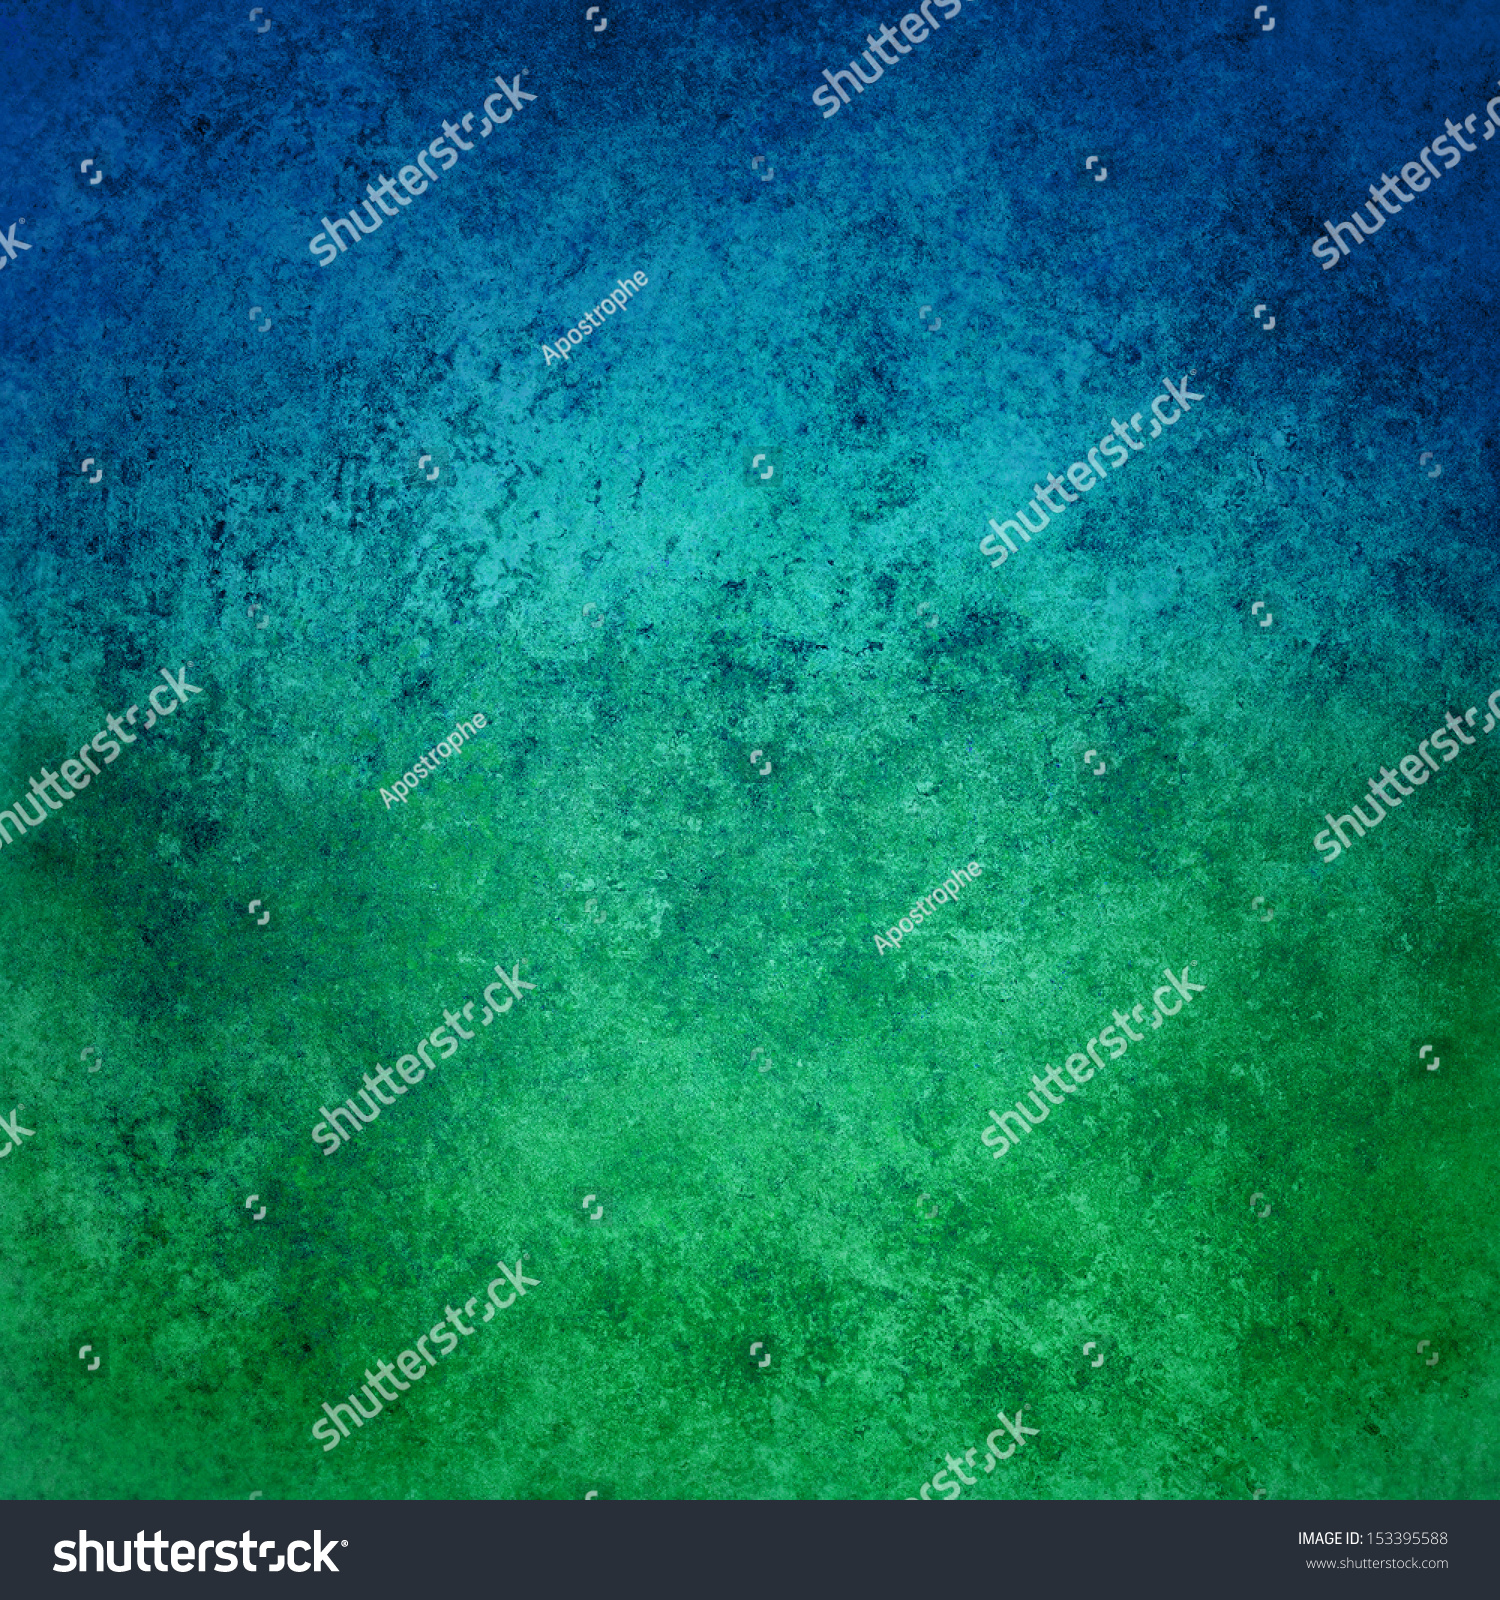 Elegant sky blue background